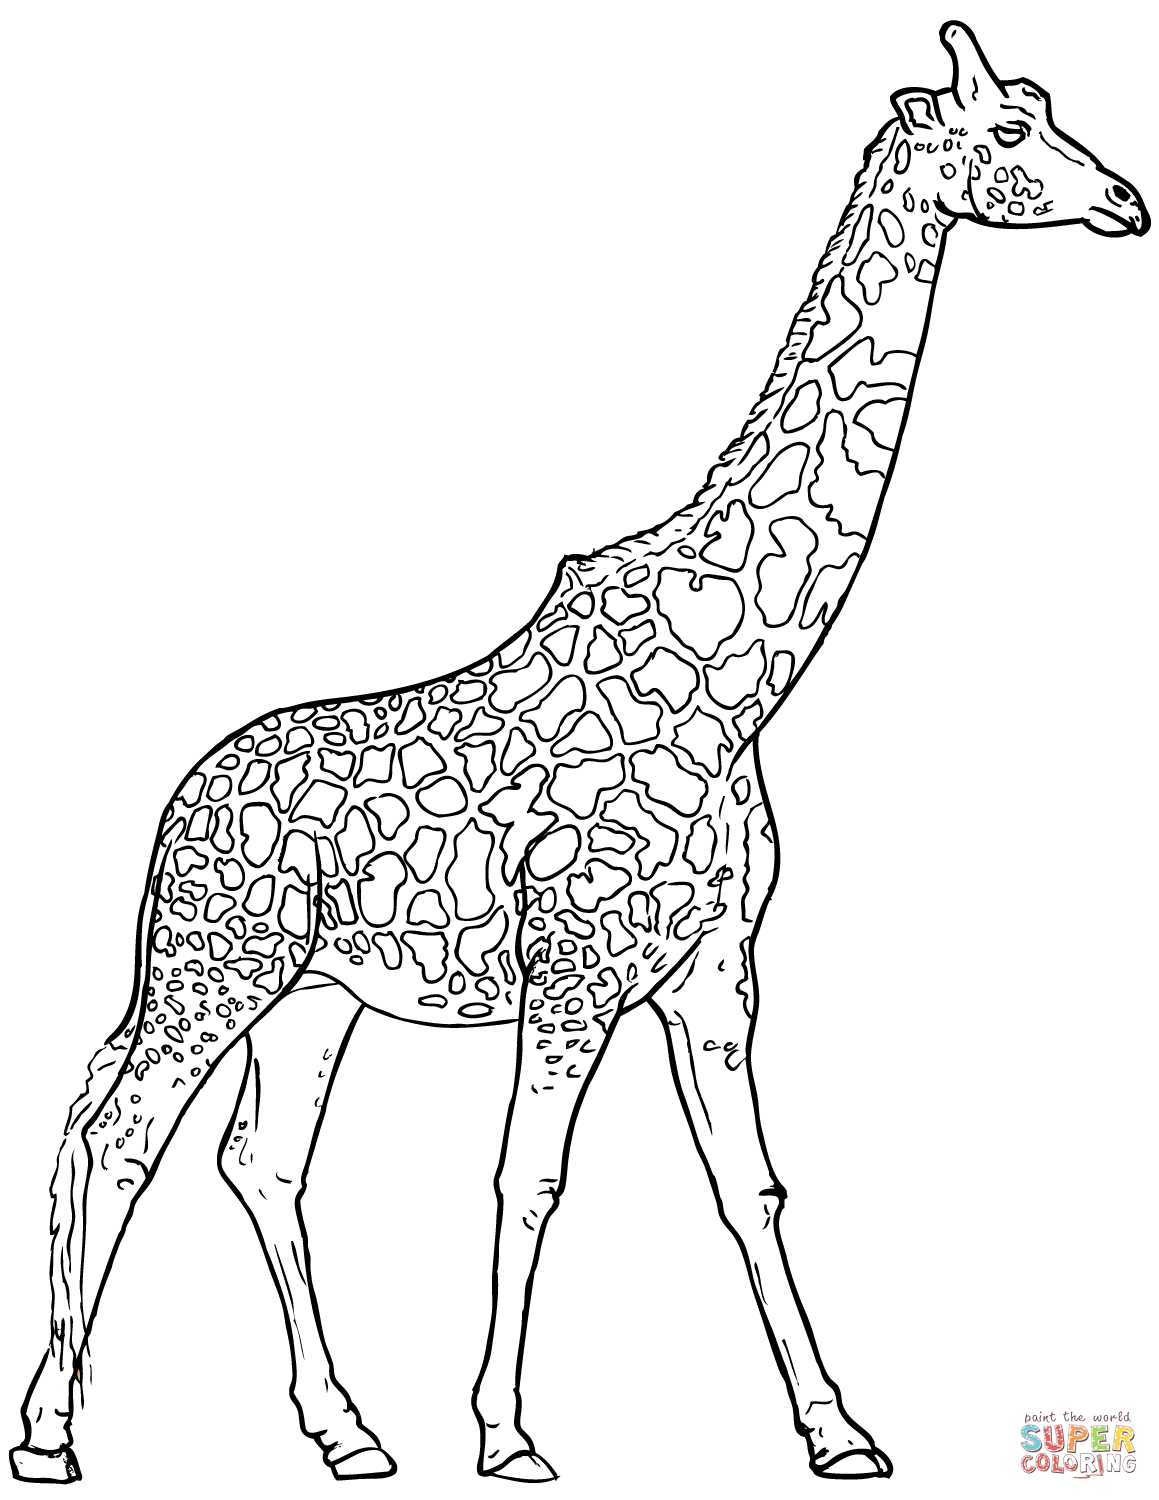 colouring pages of giraffe giraffe drawing outline at getdrawings free download giraffe colouring pages of